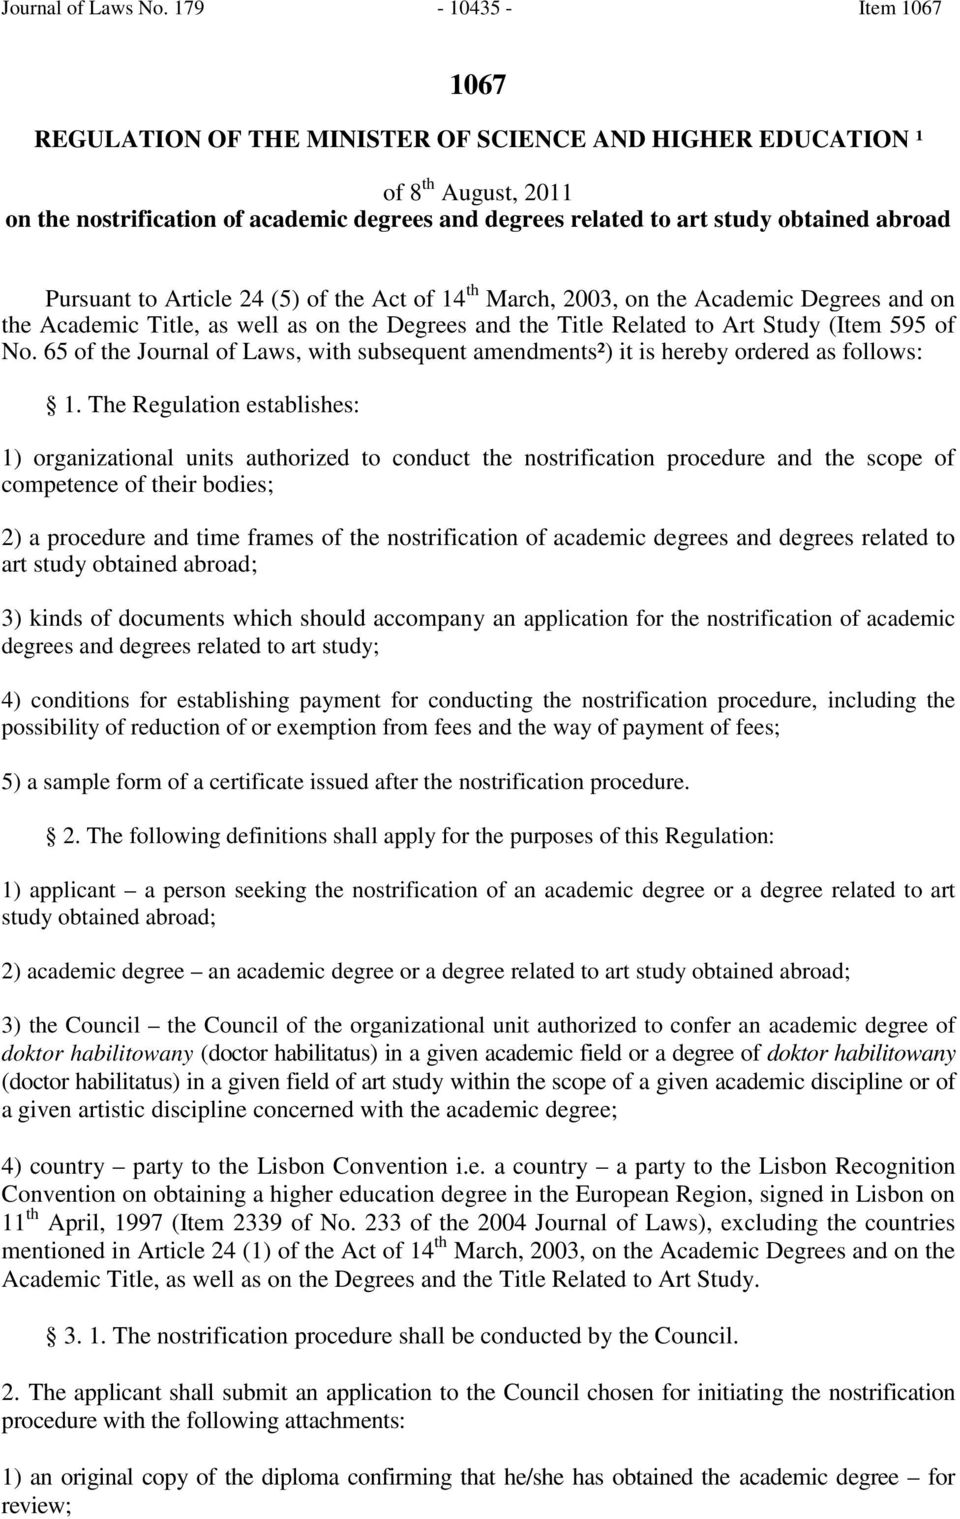 Pursuant to Article 24 (5) of the Act of 14 th March, 2003, on the Academic Degrees and on the Academic Title, as well as on the Degrees and the Title Related to Art Study (Item 595 of No.